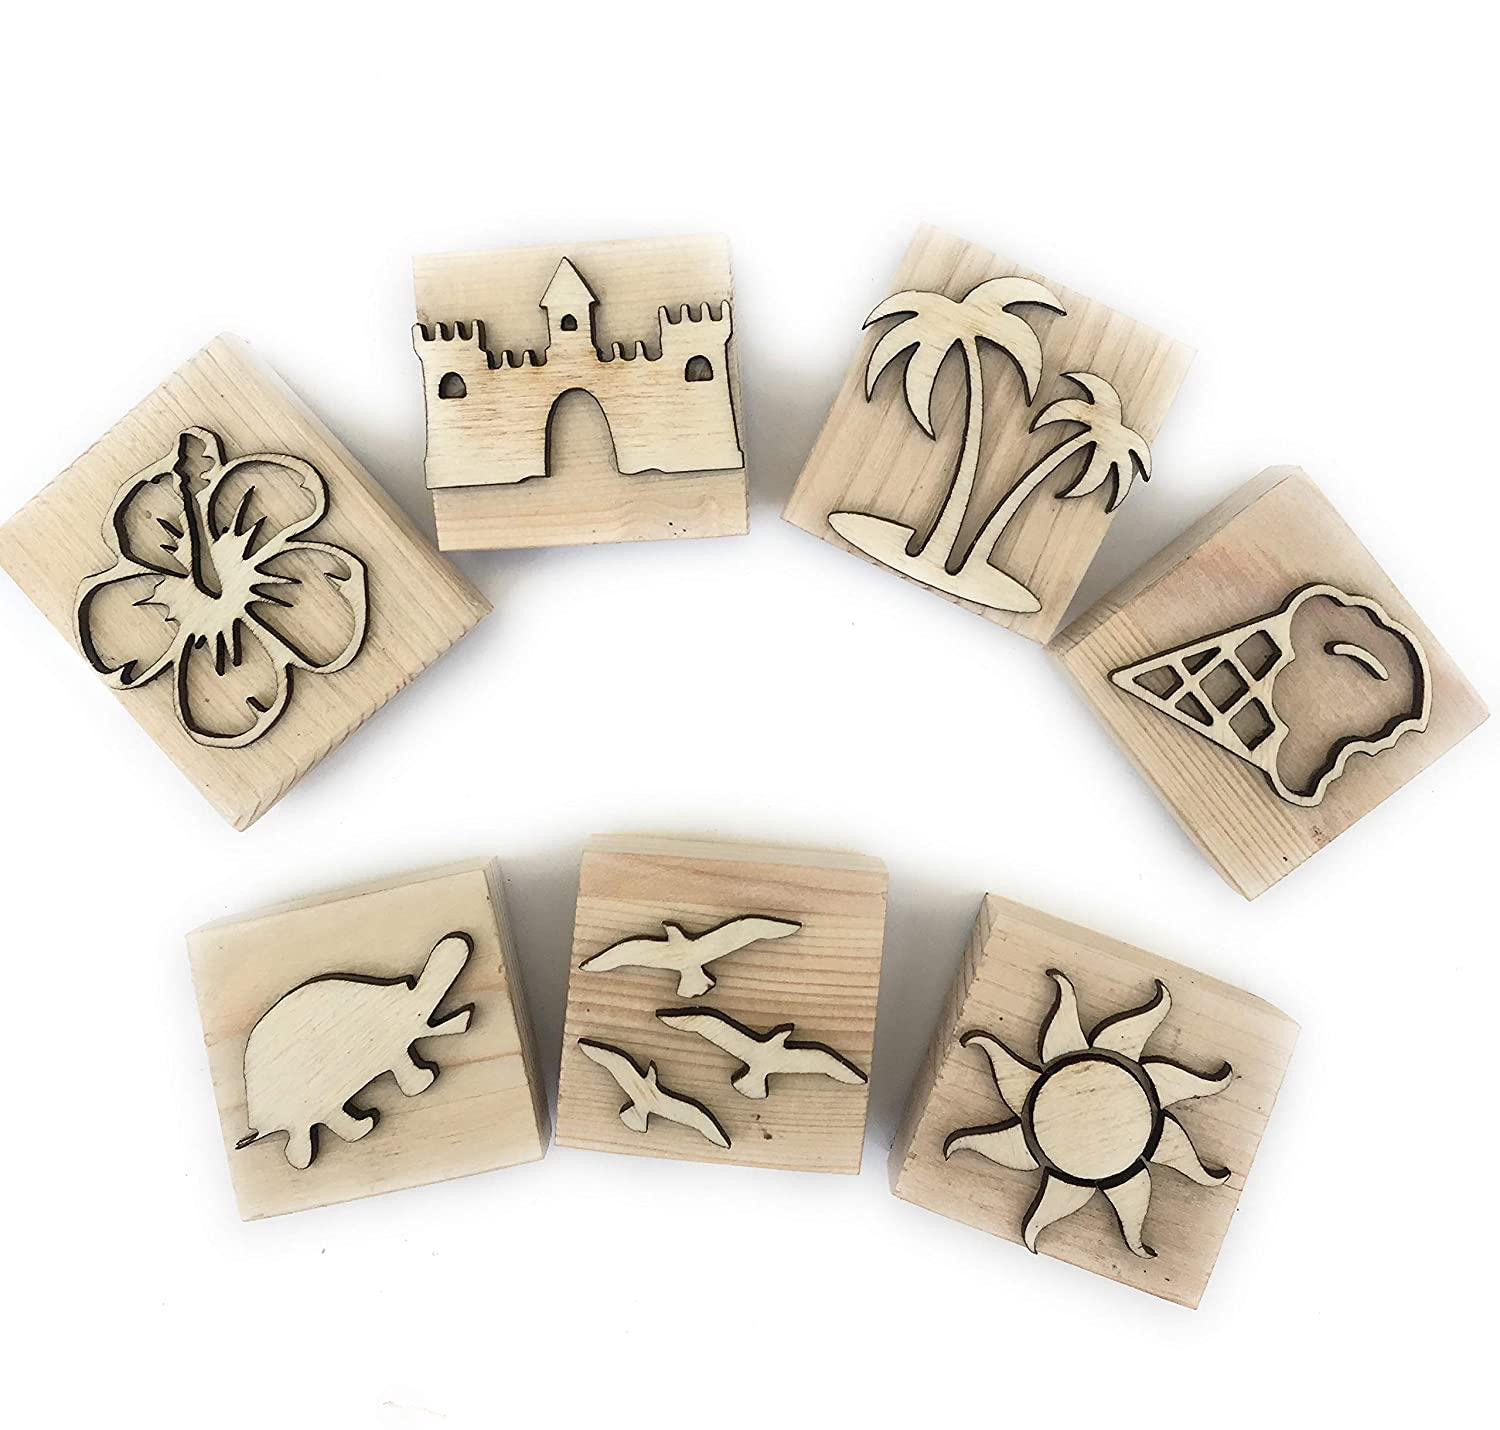 Summer themed wooden play dough stampers wooden playdough molds summer stamps kinetic sand molds slime Montessori wooden toys